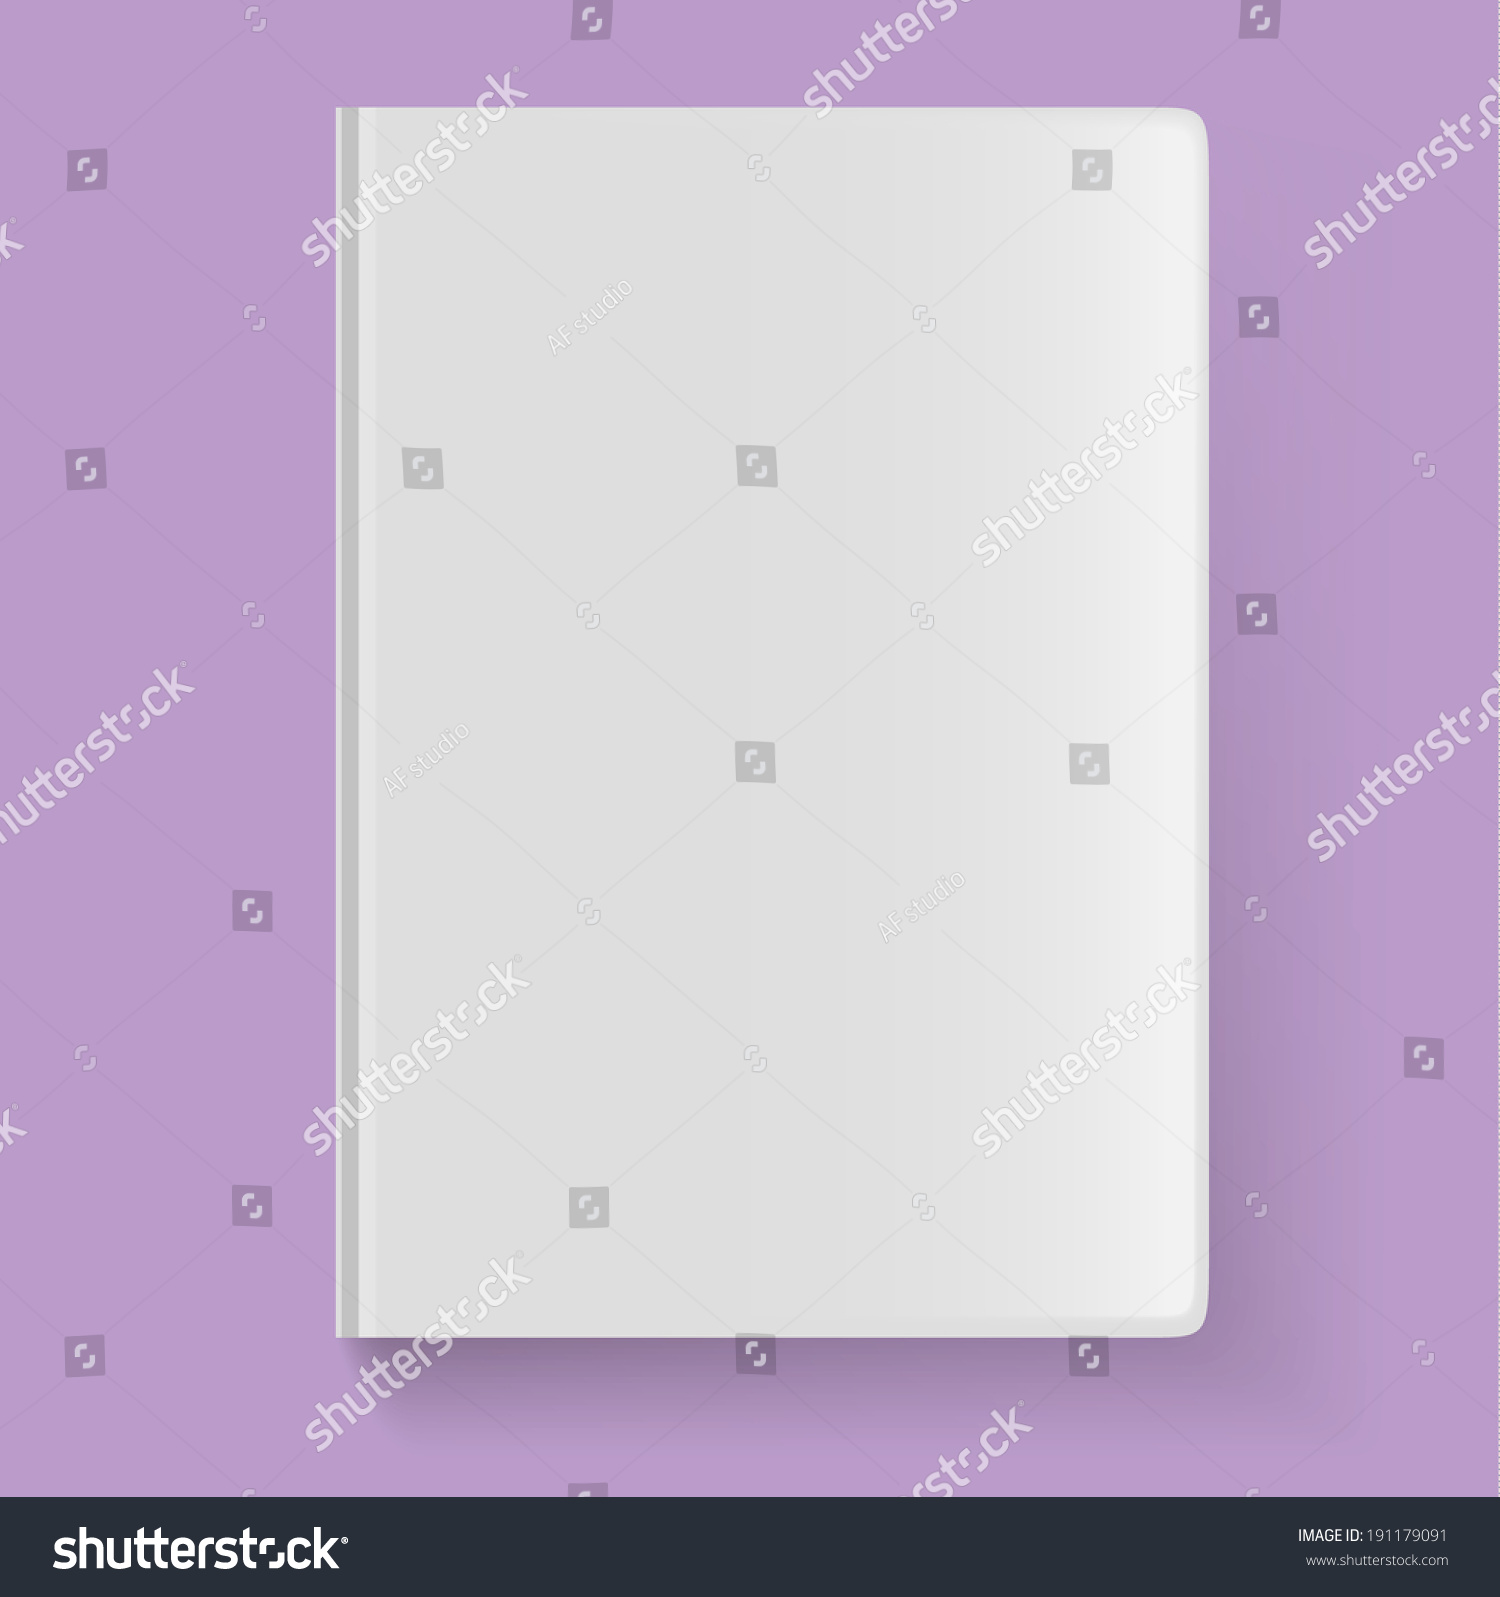 Blank Book Cover Vector Illustration Free ~ Blank book cover vector illustration